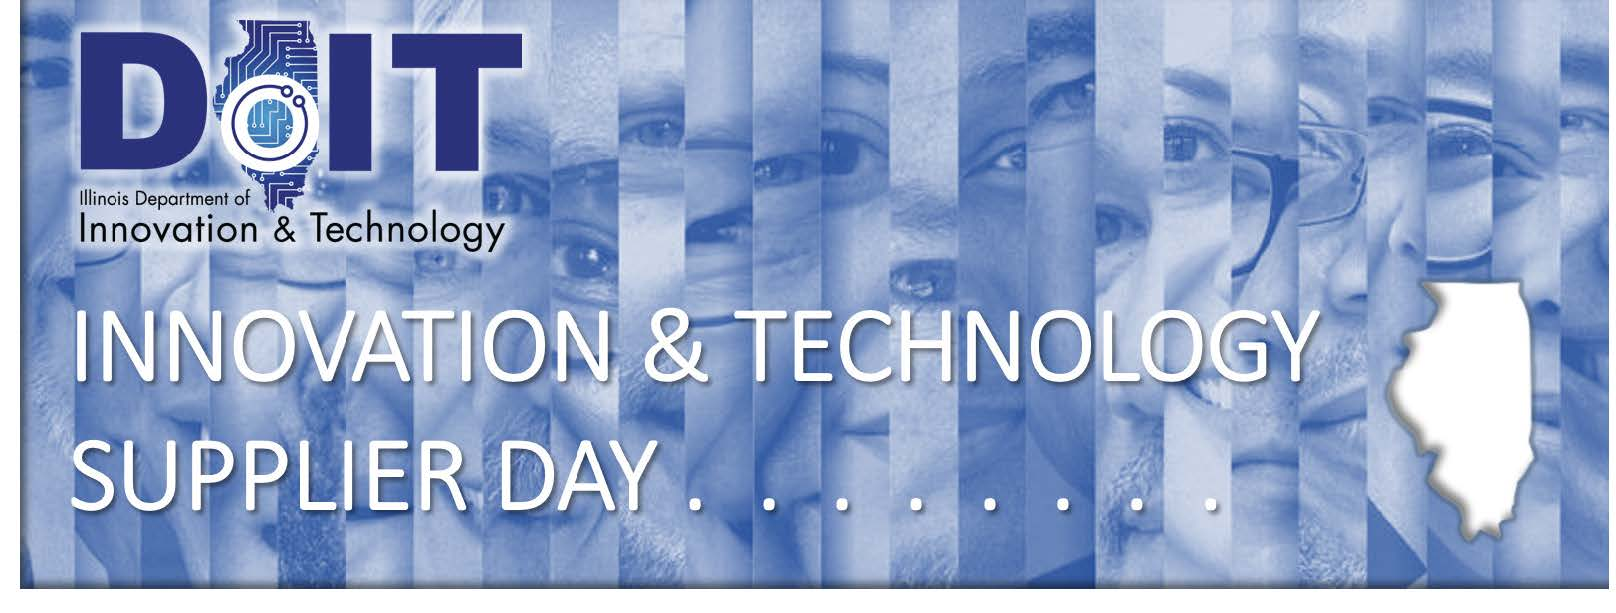 Innovation & Technology Supplier Day - Events